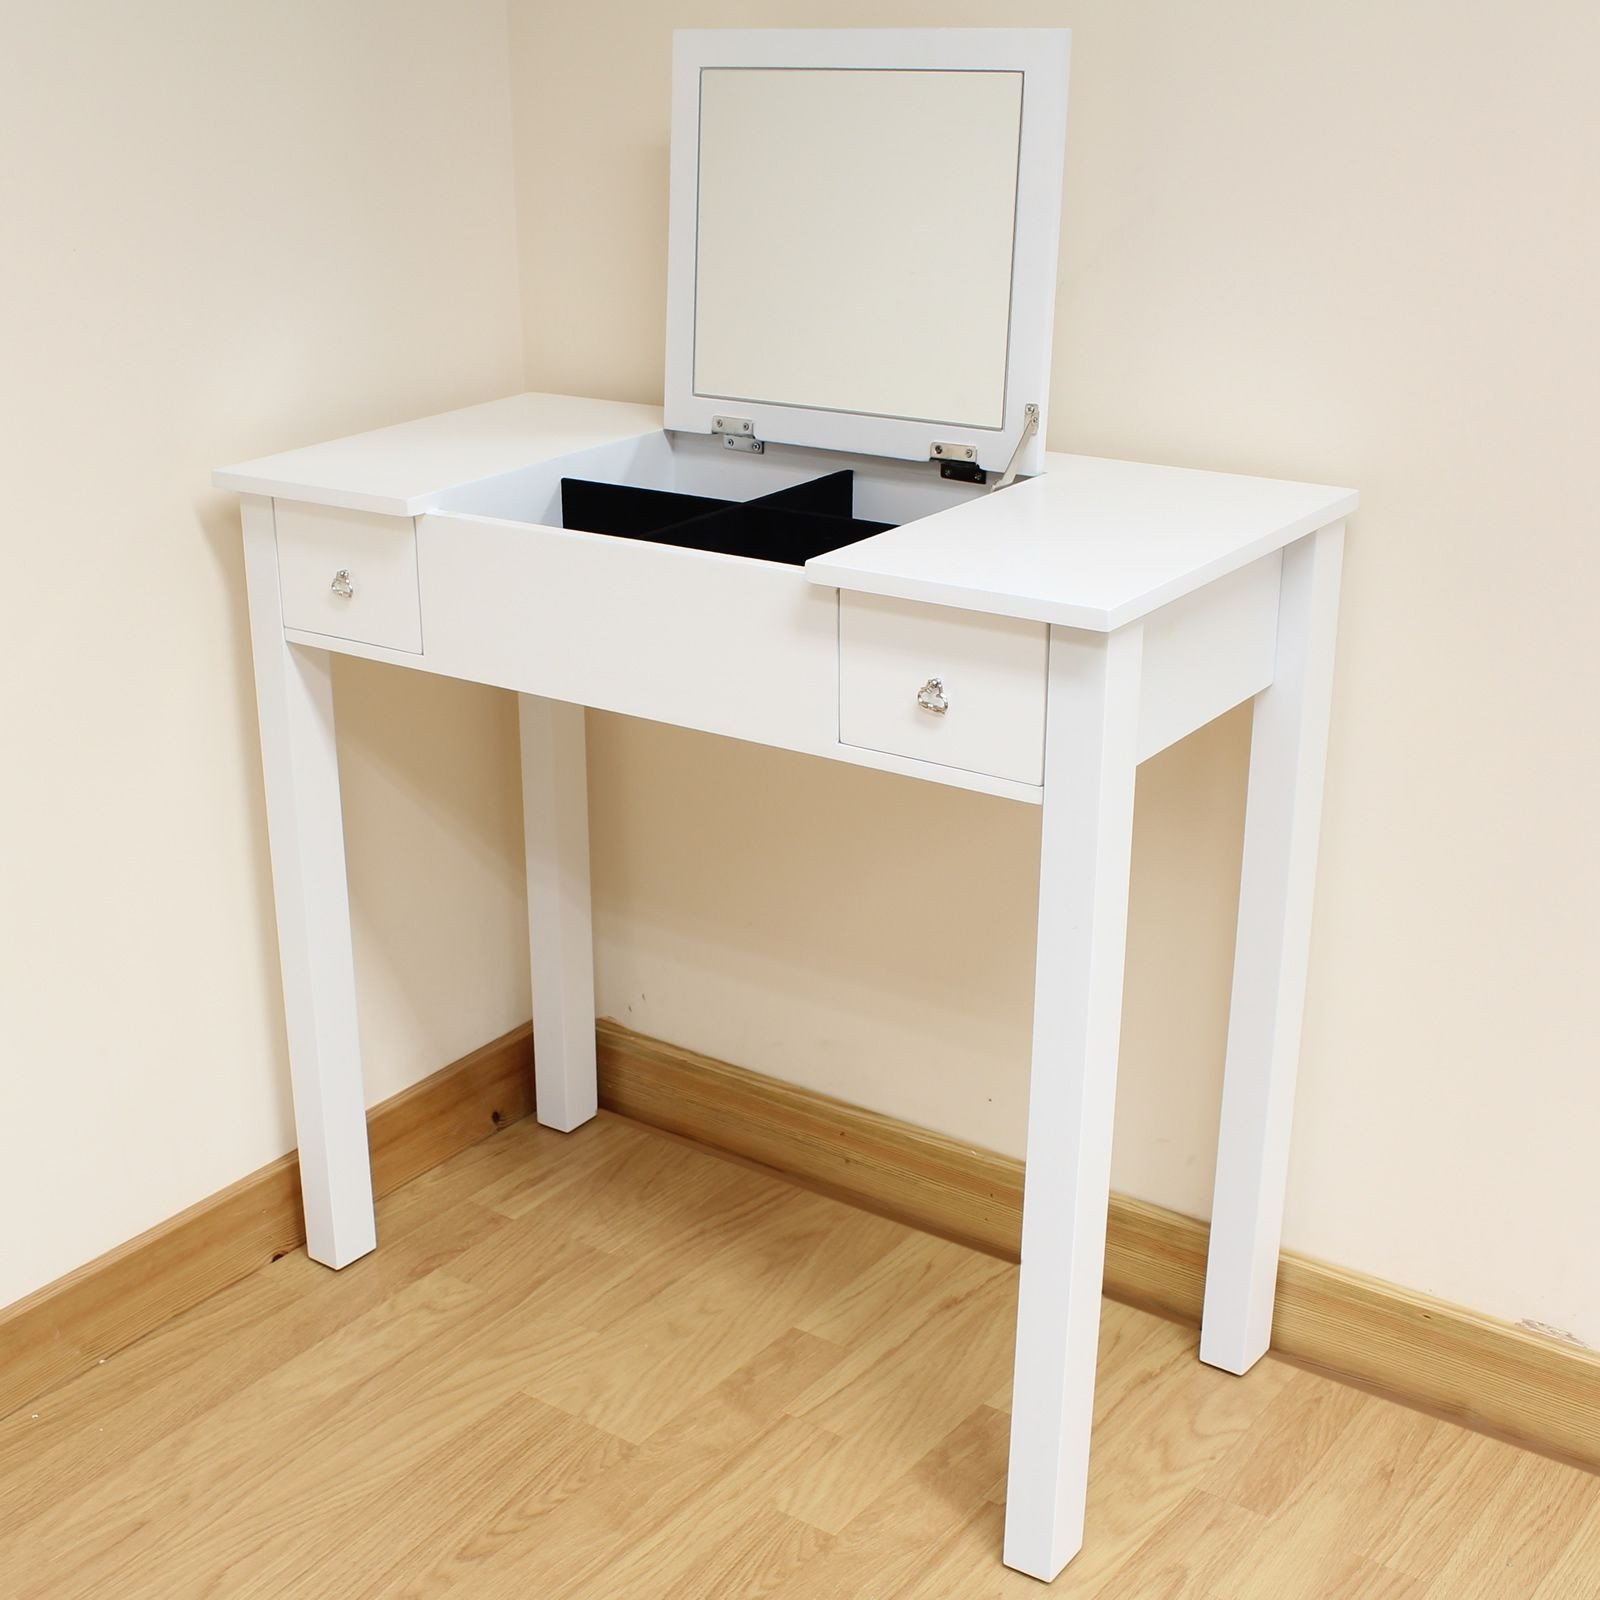 Make Up Vanity for Bedroom Beautiful Vanity with A Fold Down Mirror